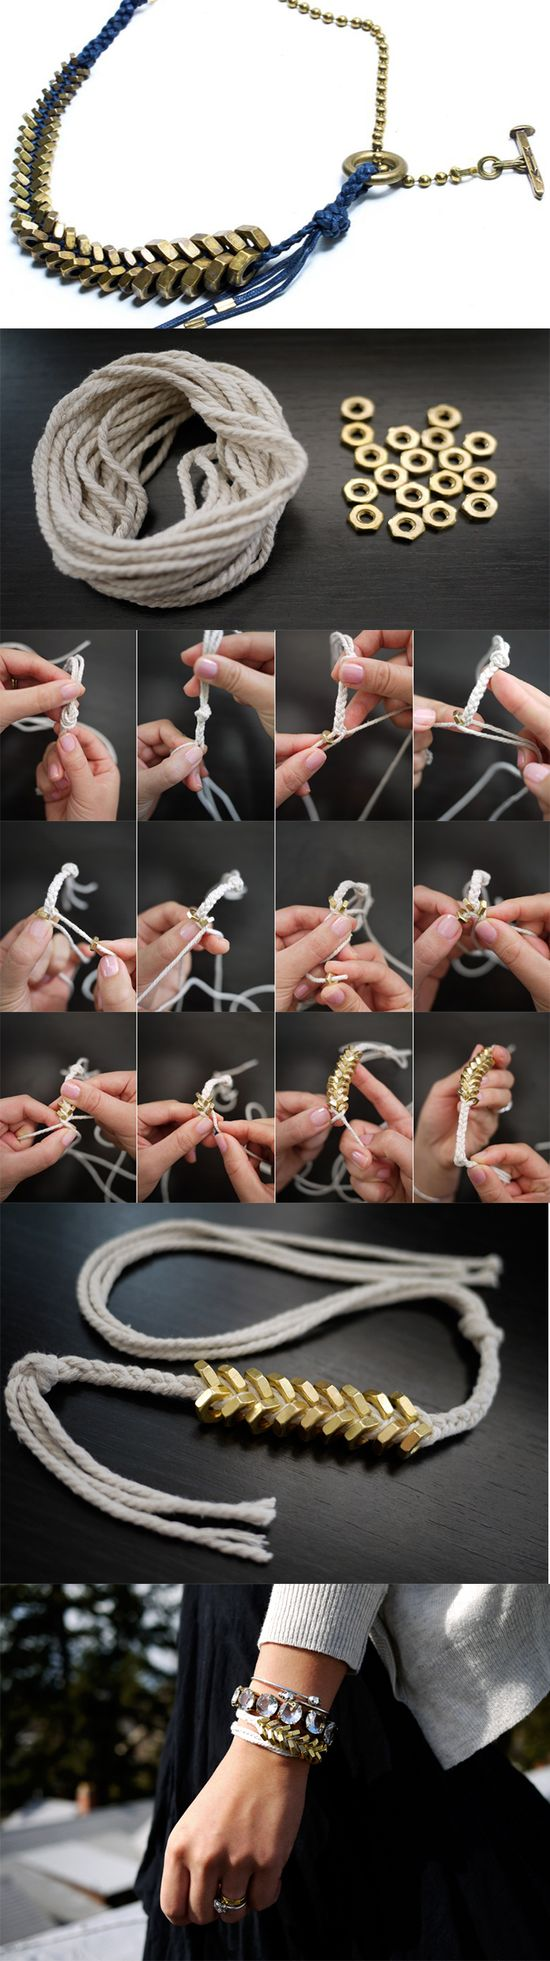 Braided  Bracelet – DIY #DIY #create #design #bracelet #dreamoutloud